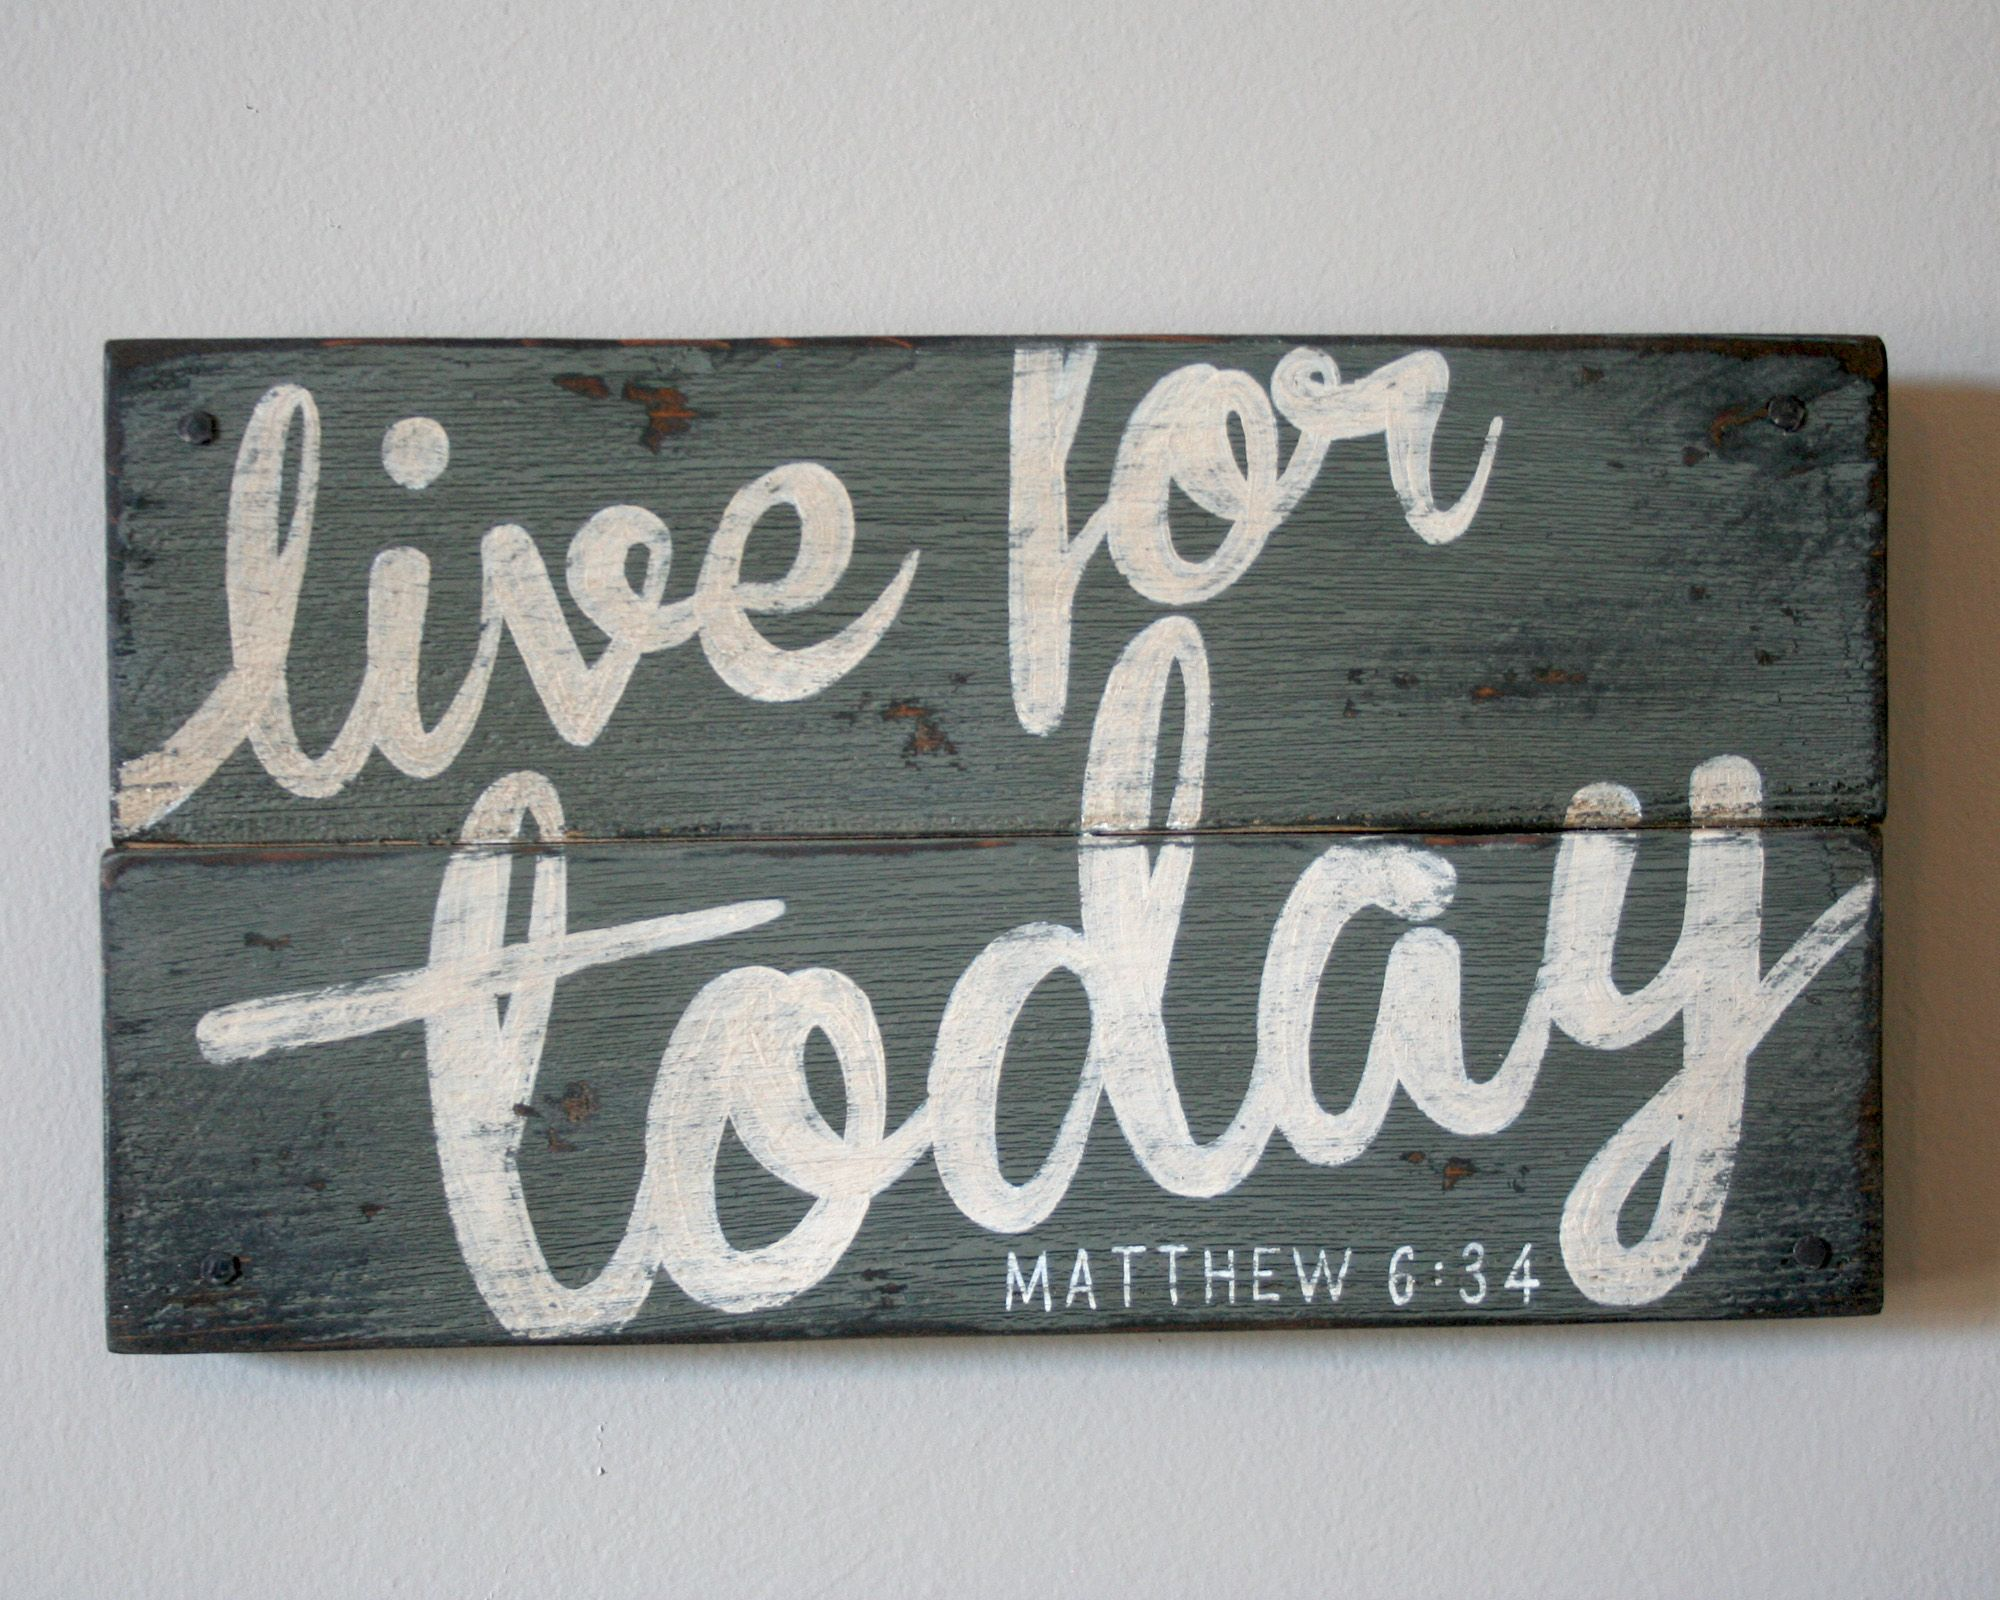 live for today hand painted wood sign from shanty town home decor